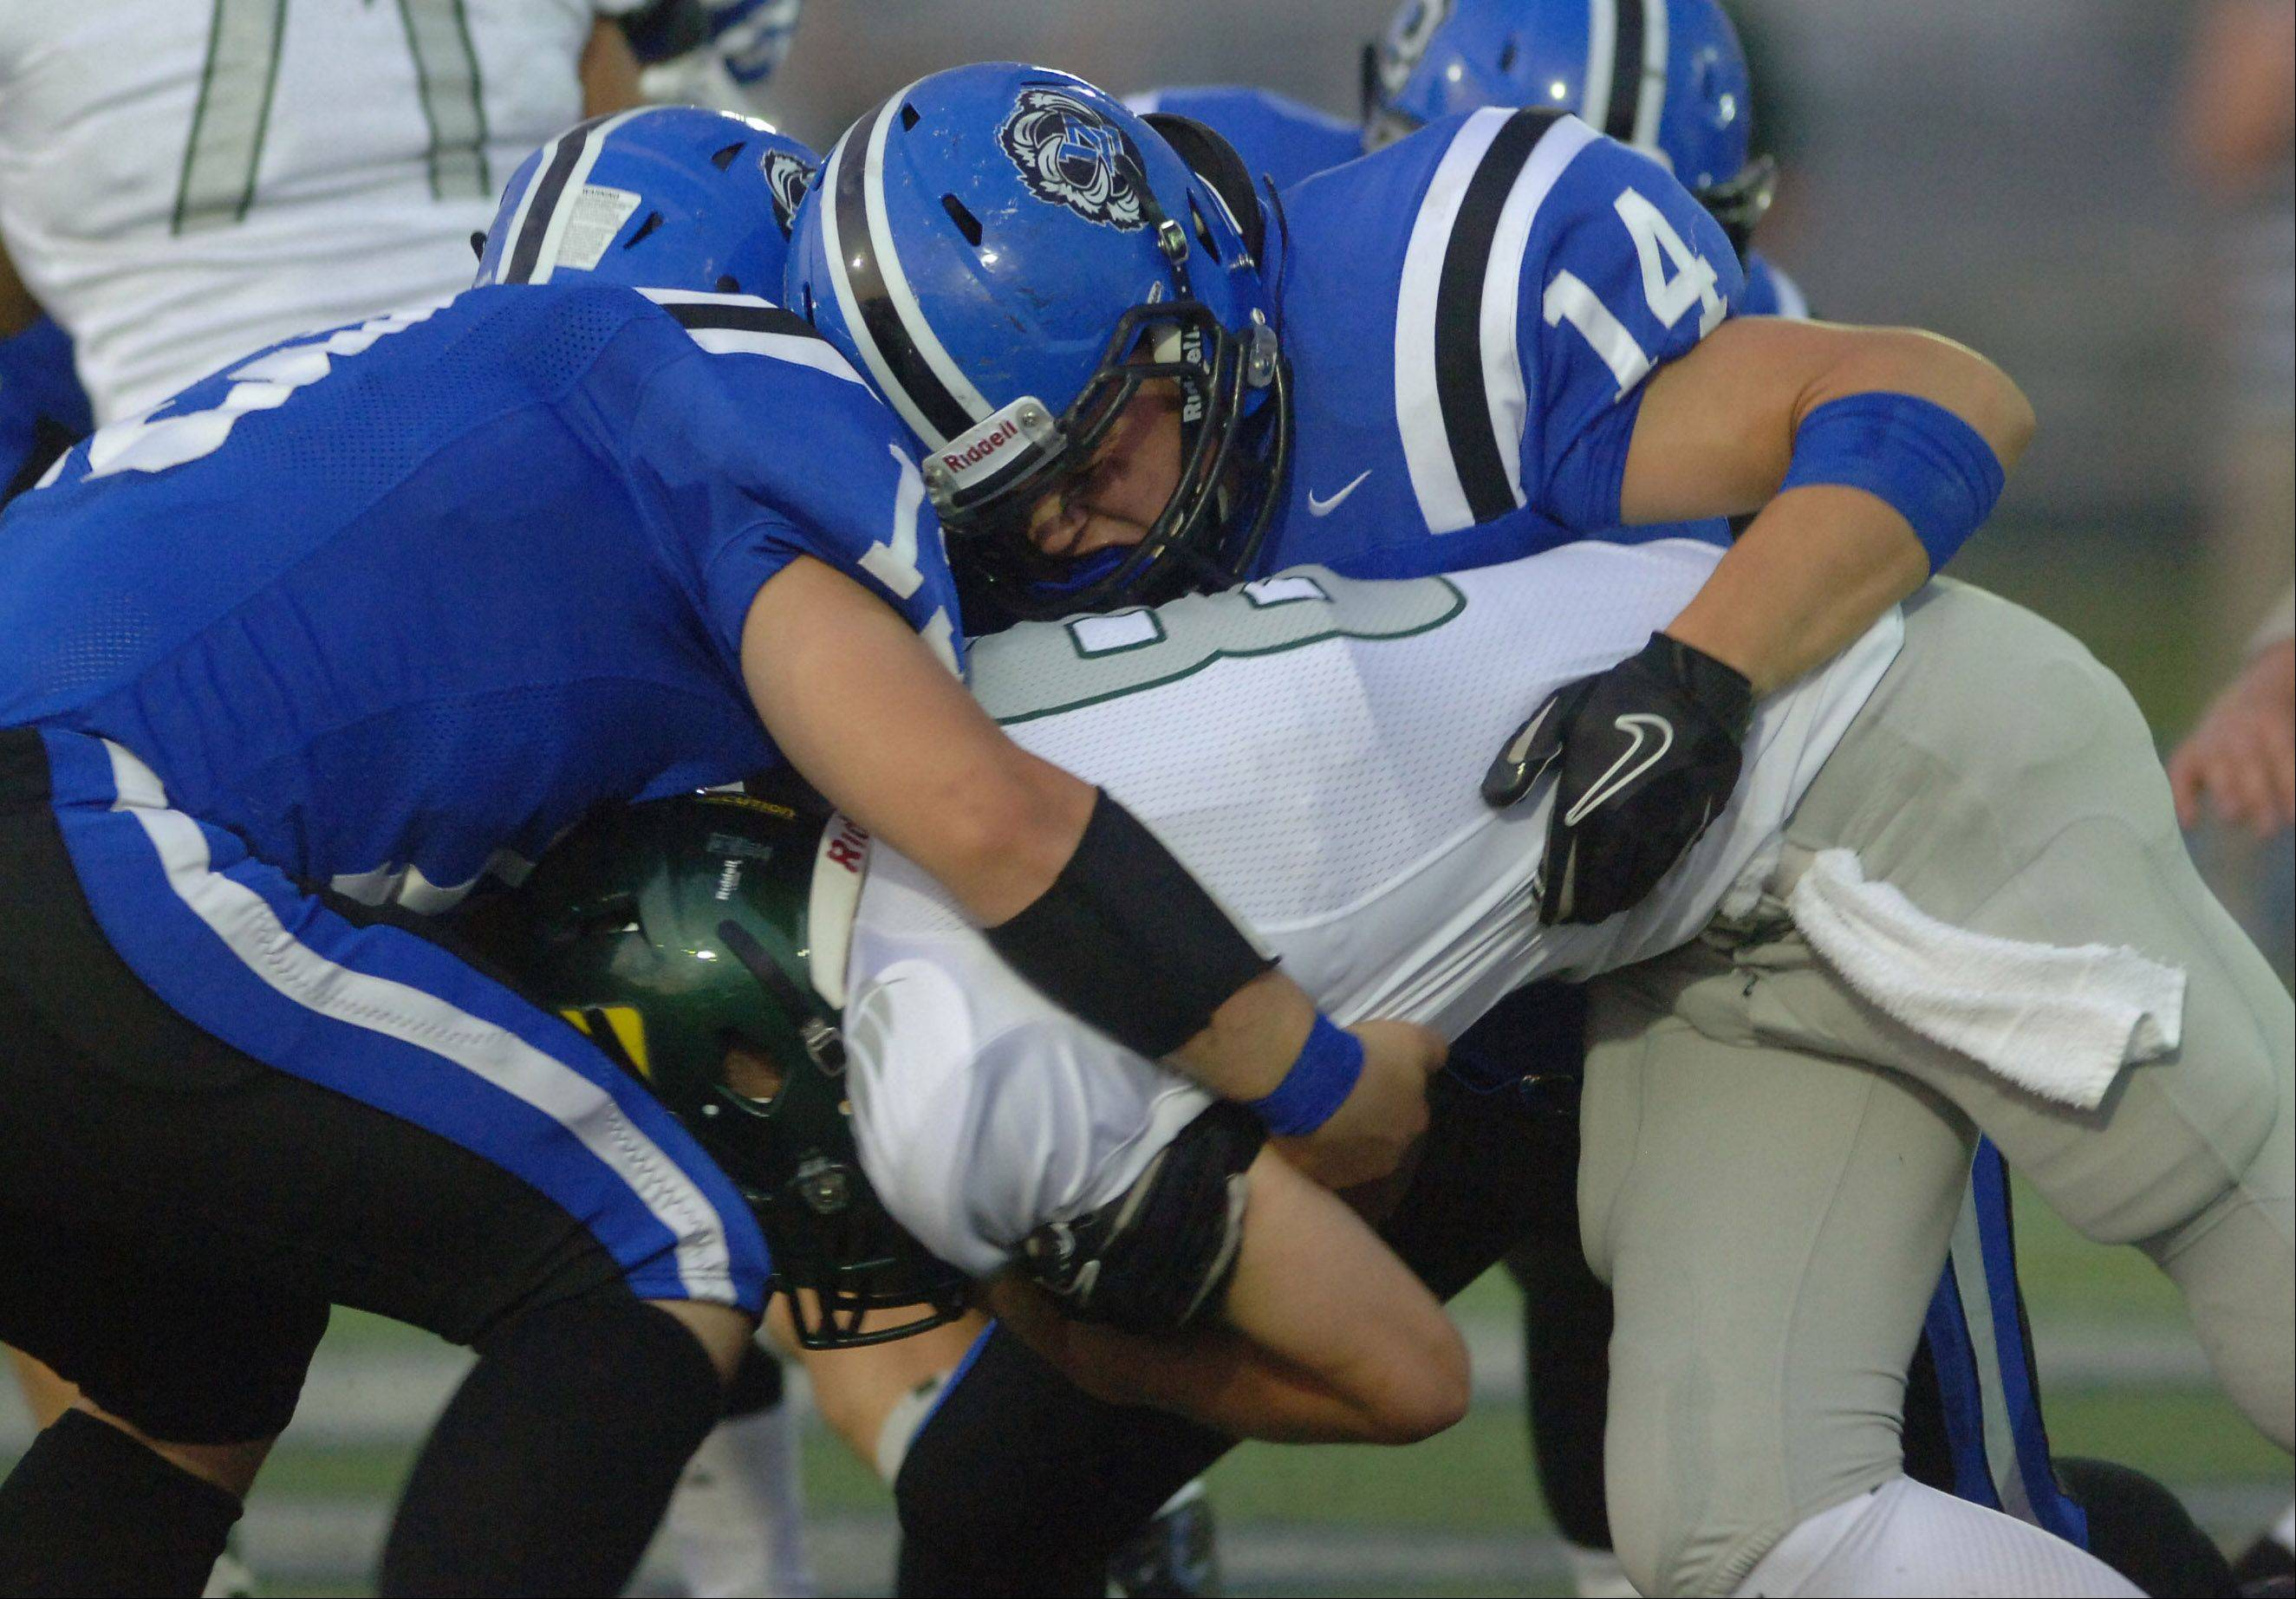 Lake Zurich Bears Christopher Lehtinen, left, and Tanner Kiser wrap up Fremd quarterback Sam Beutler.